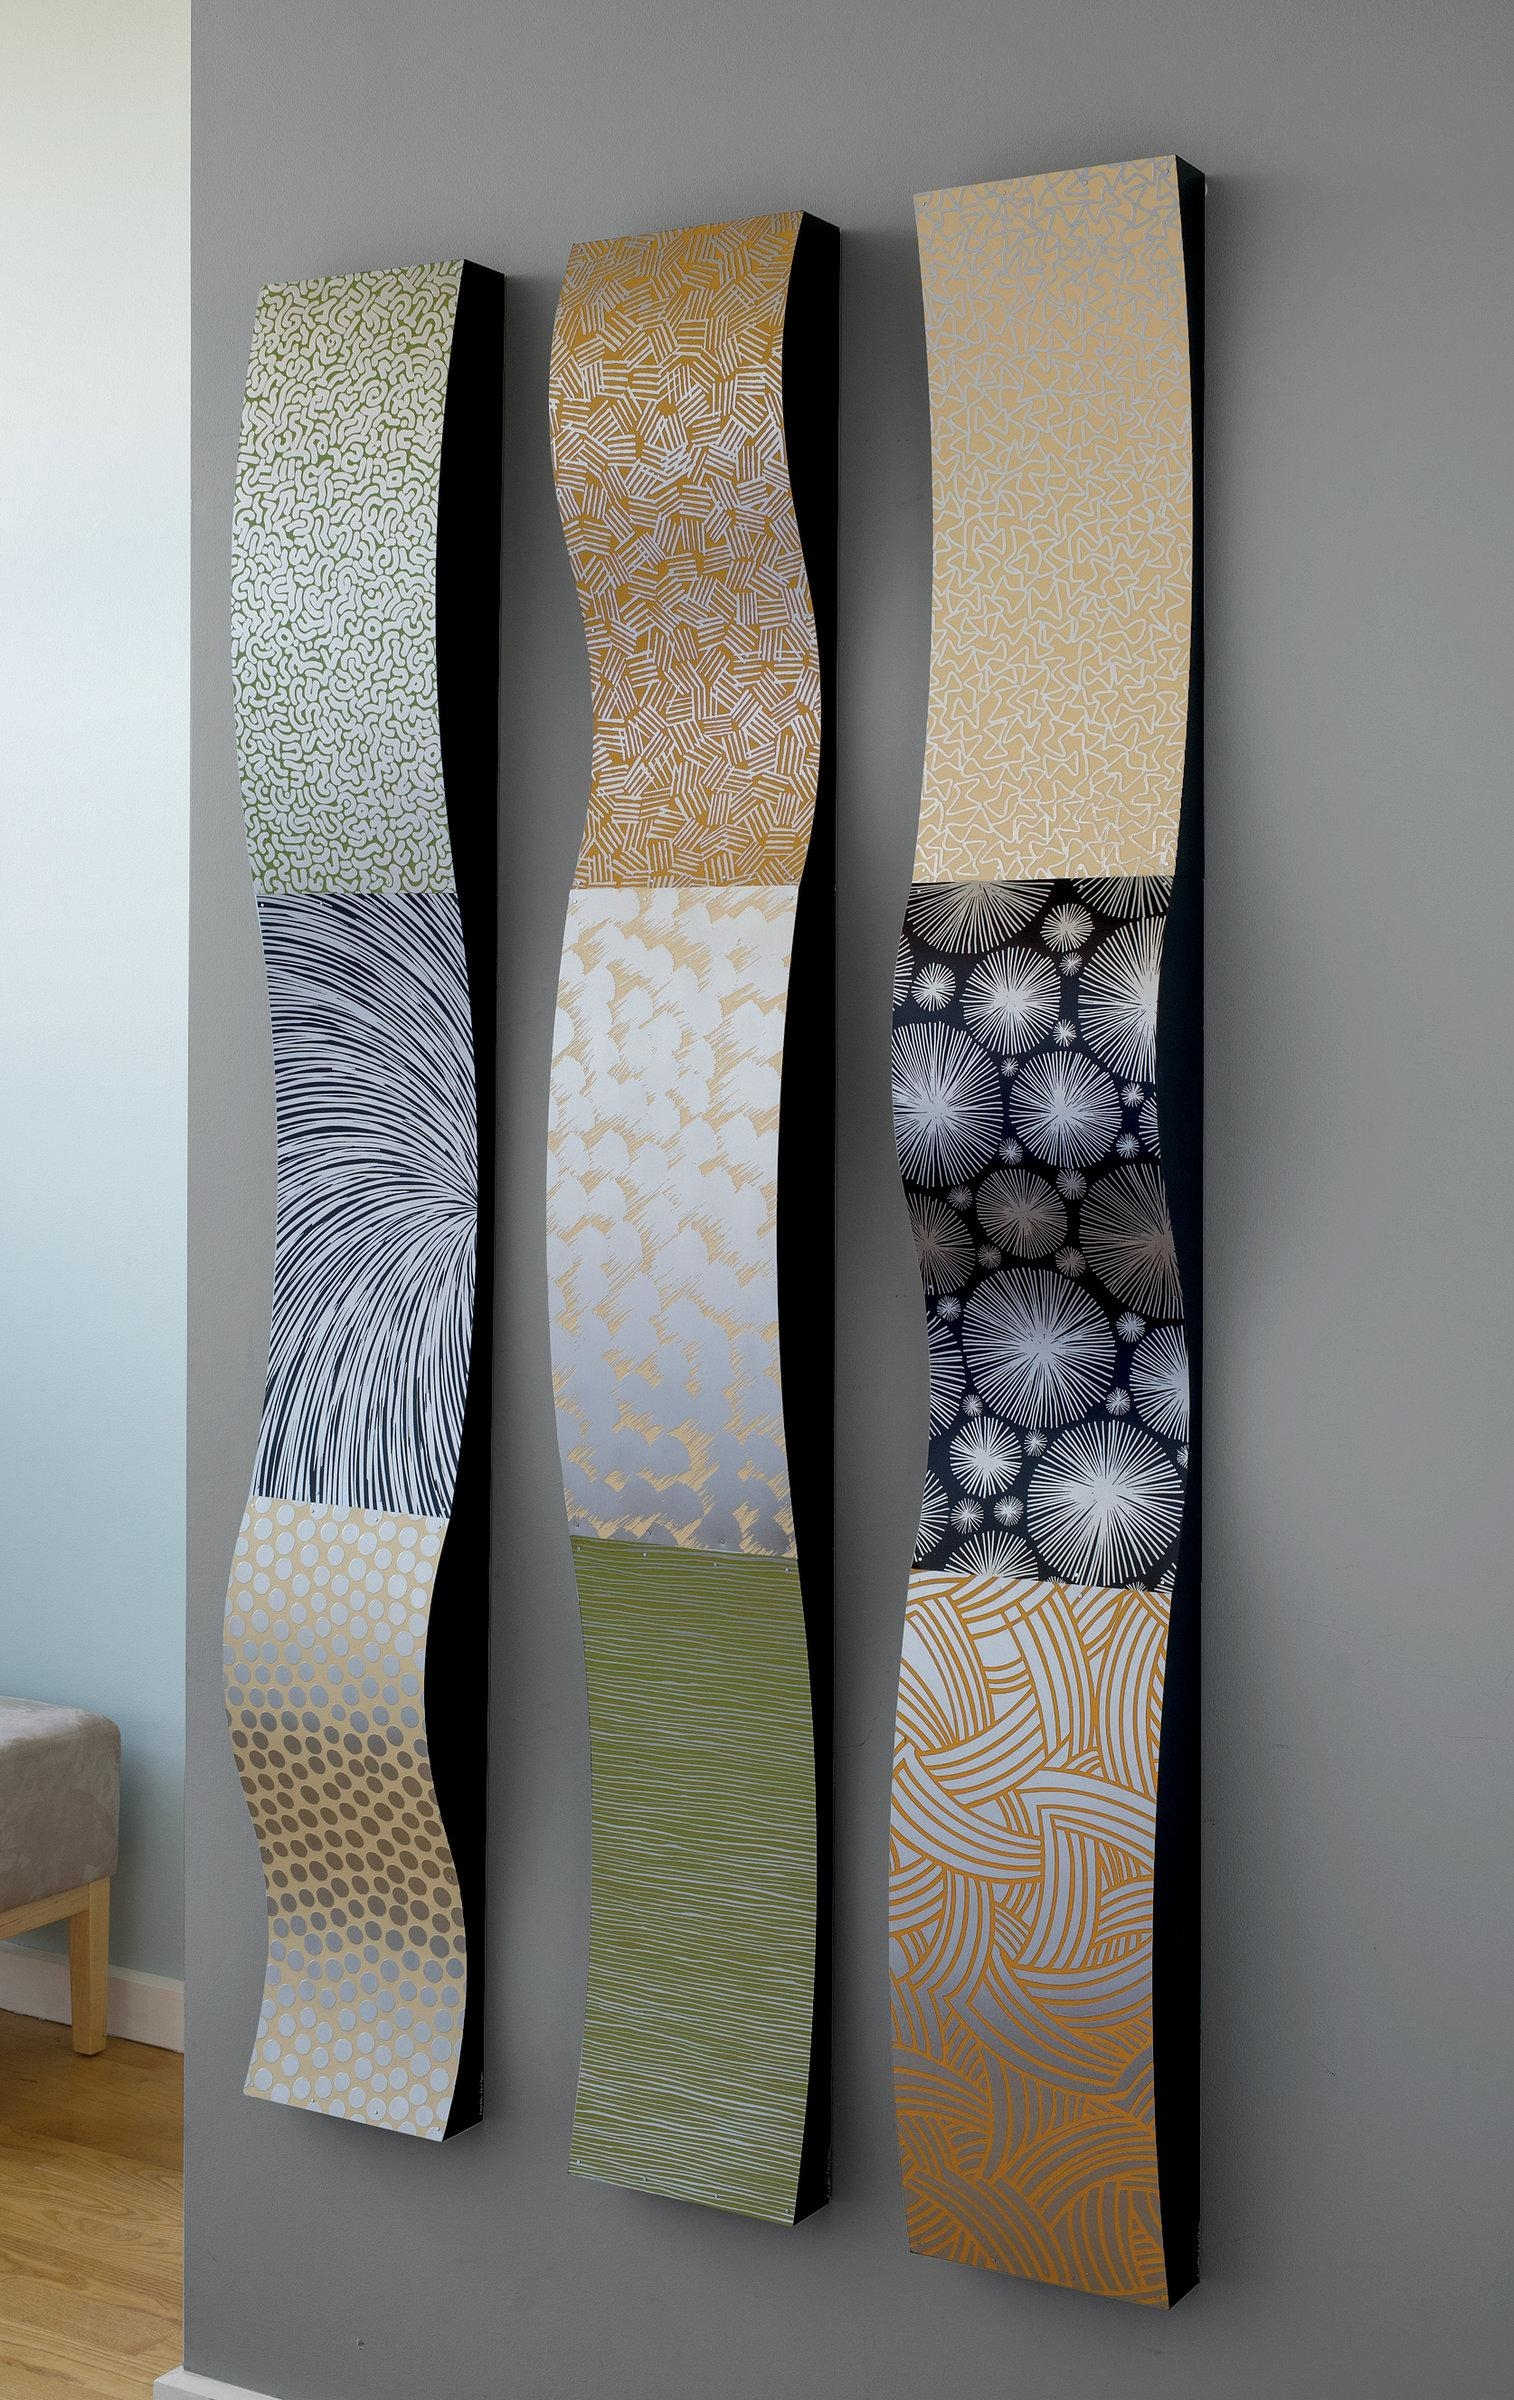 Stainless Steel Wall Ribbonslinda Leviton (Metal Wall Pertaining To Contemporary Metal Wall Art Sculpture (View 7 of 20)